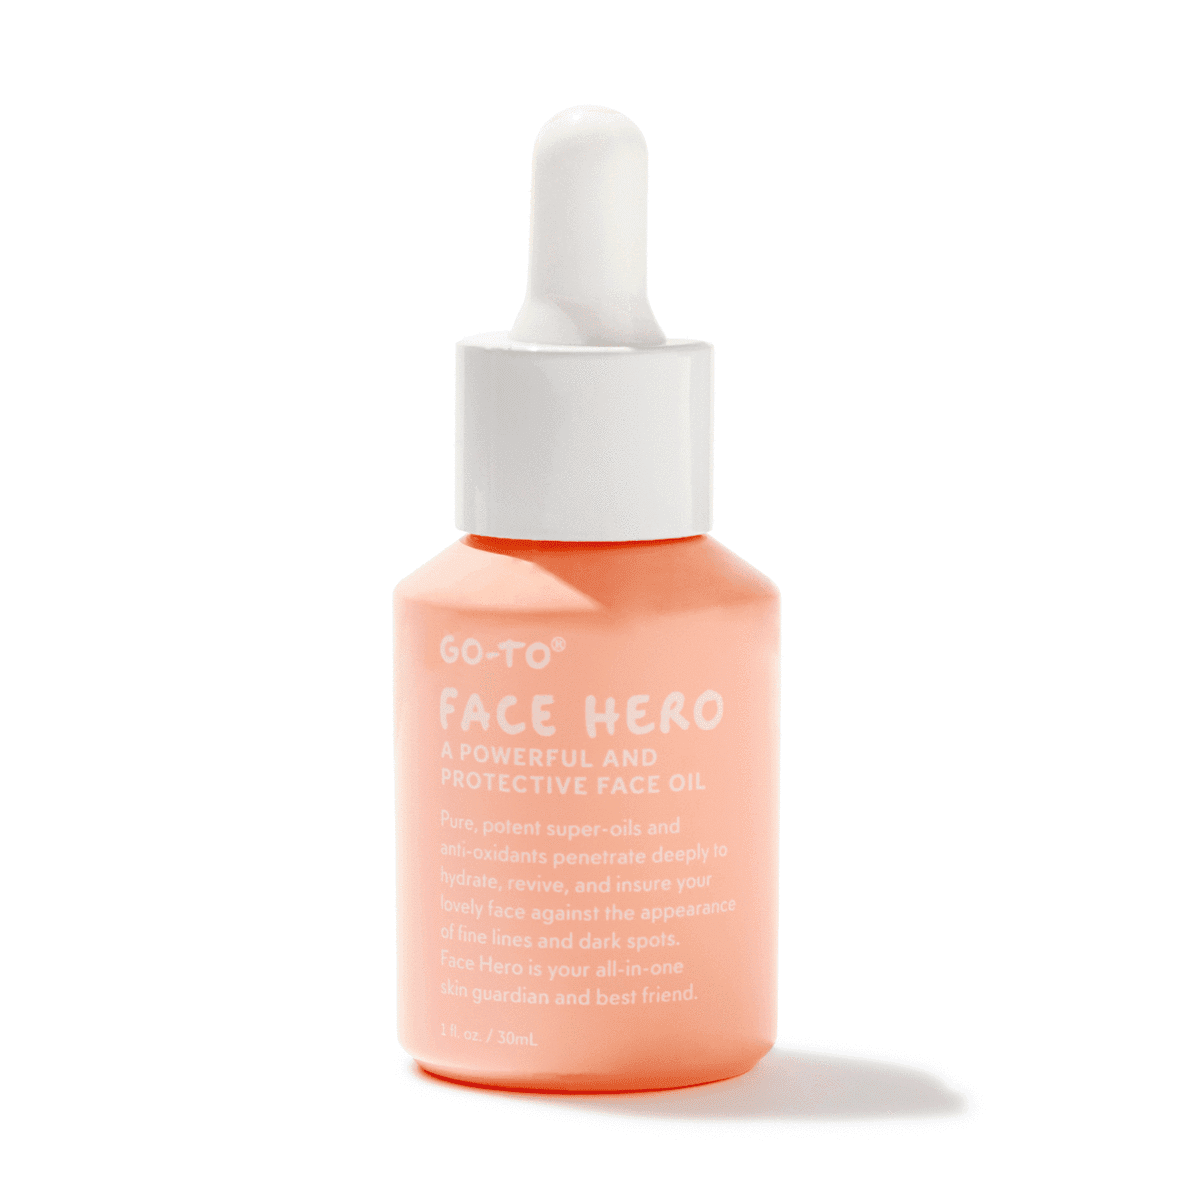 Face hero oil in a salmon and white dropper bottle